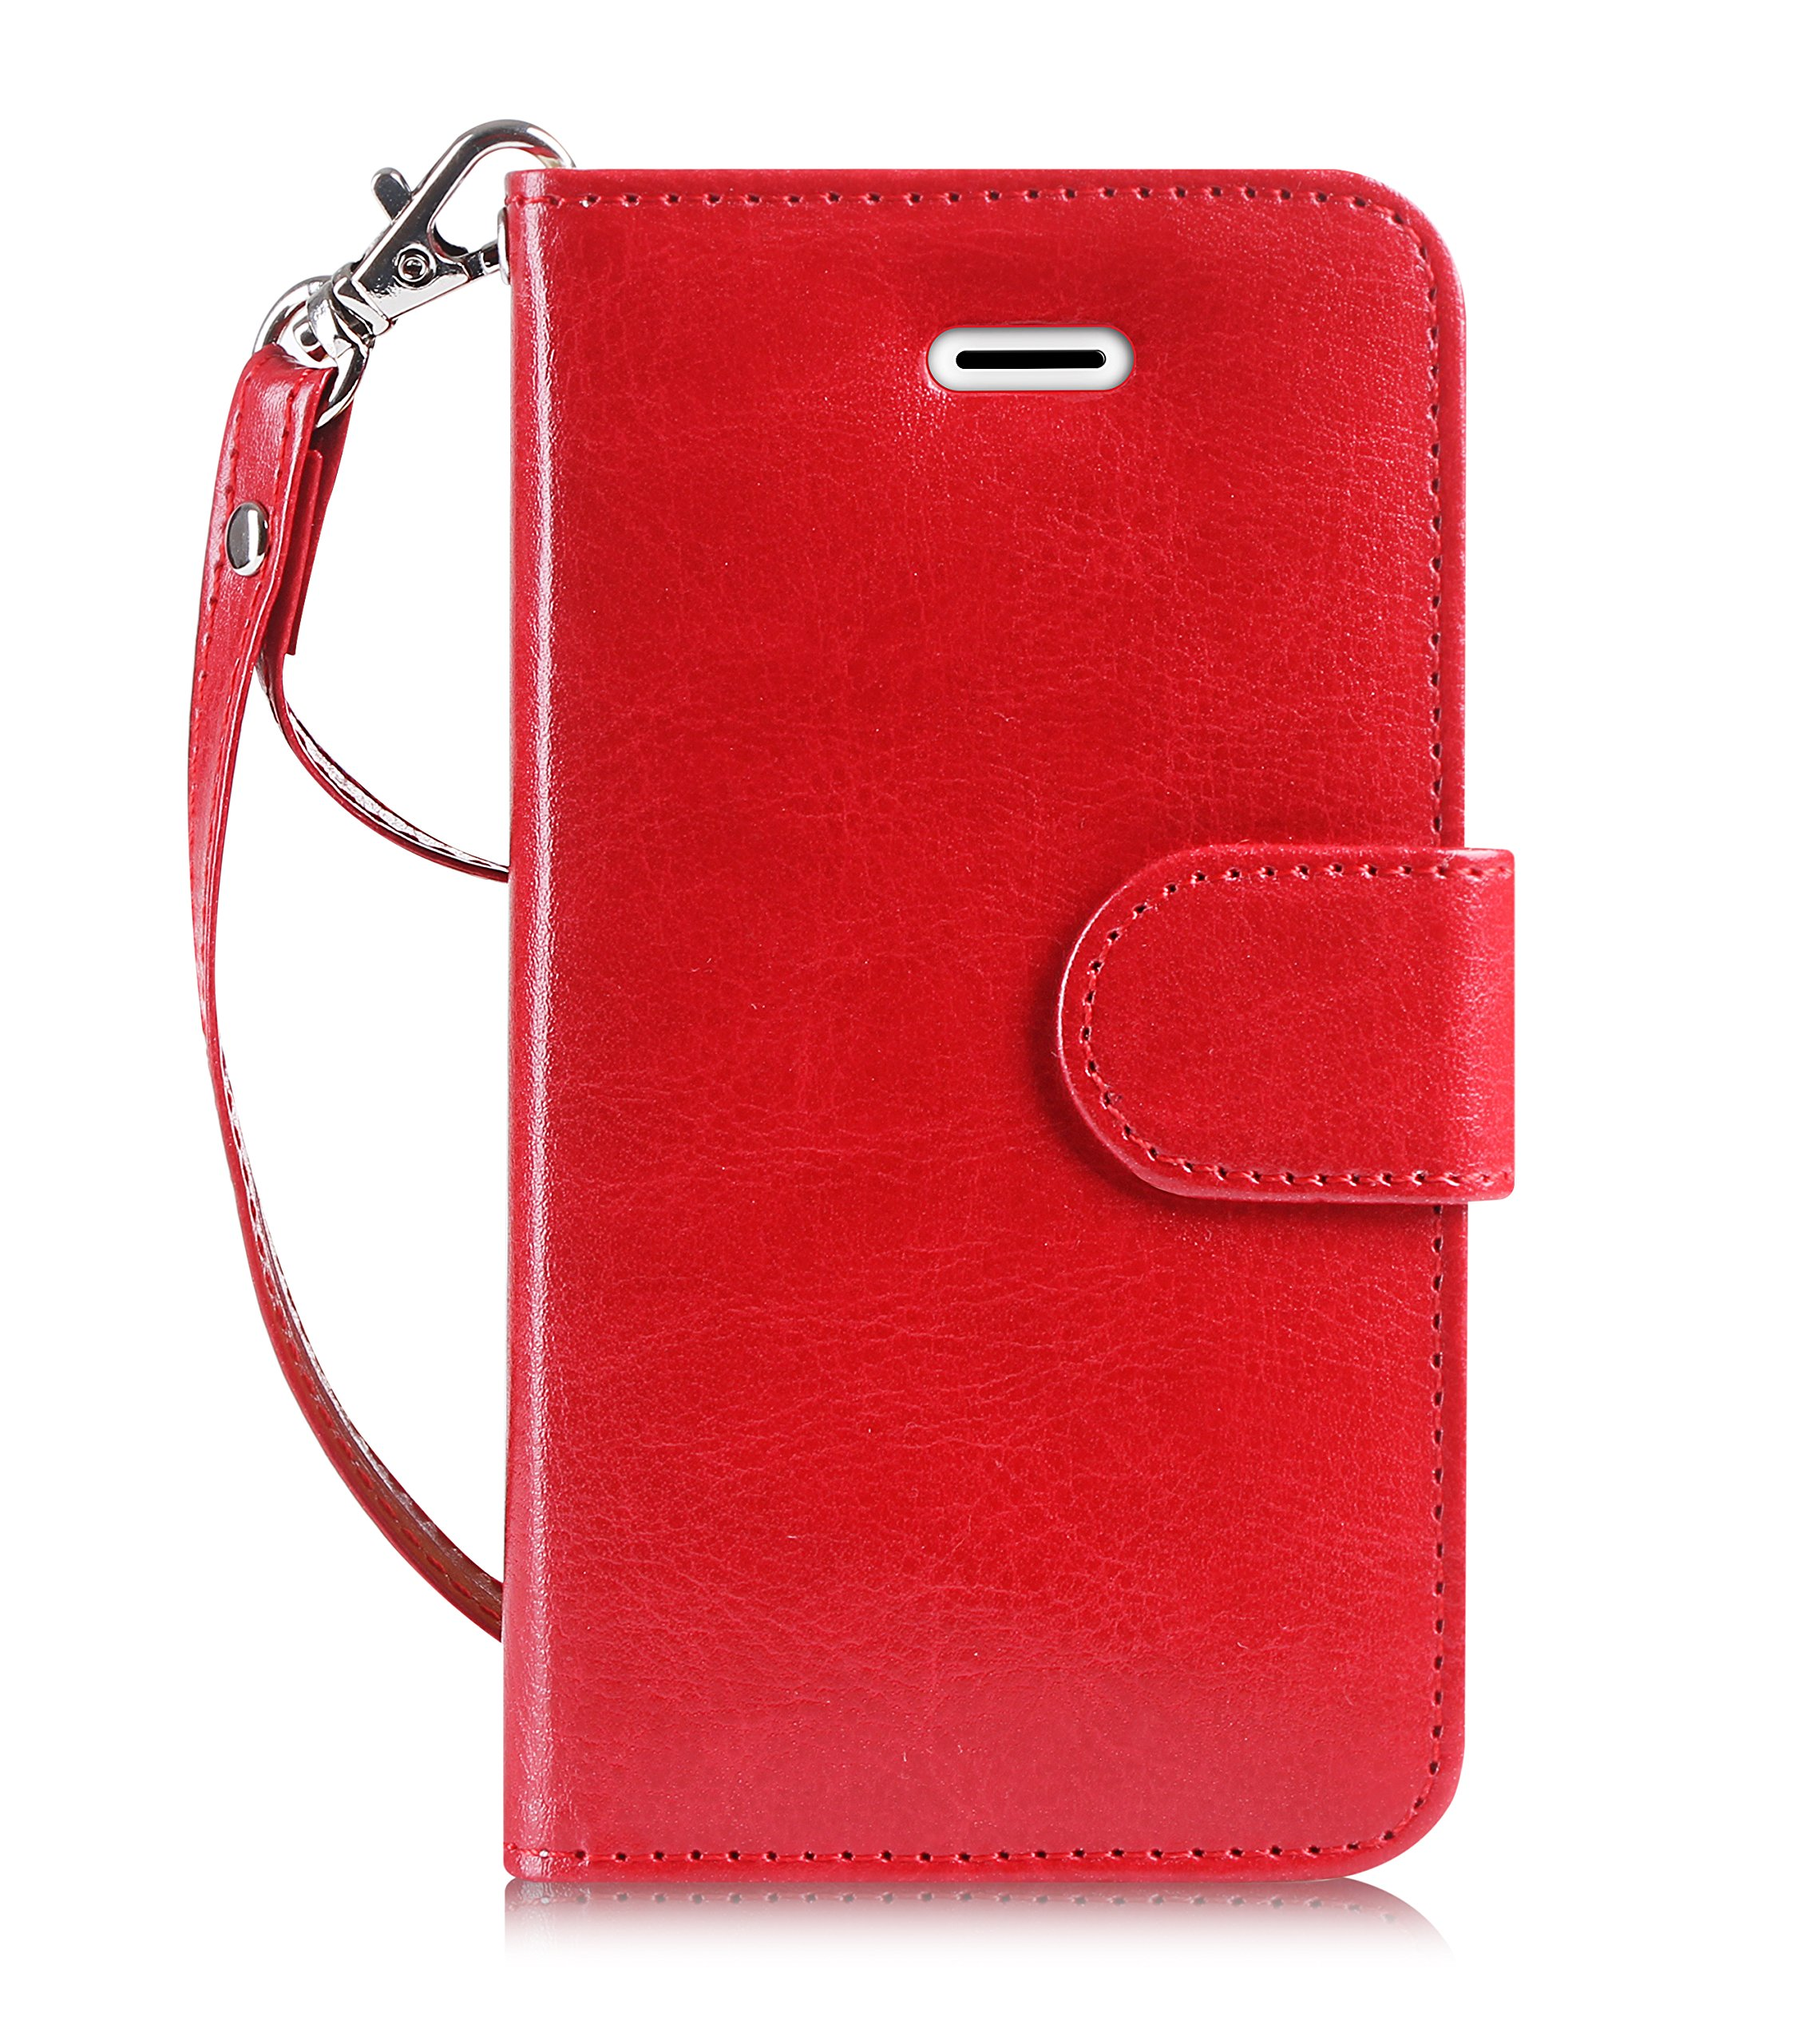 FYY Case for iPhone SE/iPhone 5S Case, [Kickstand Feature] Flip Folio Leather Wallet Case with ID and Credit Card Pockets for Apple iPhone/5S/5/5C Red